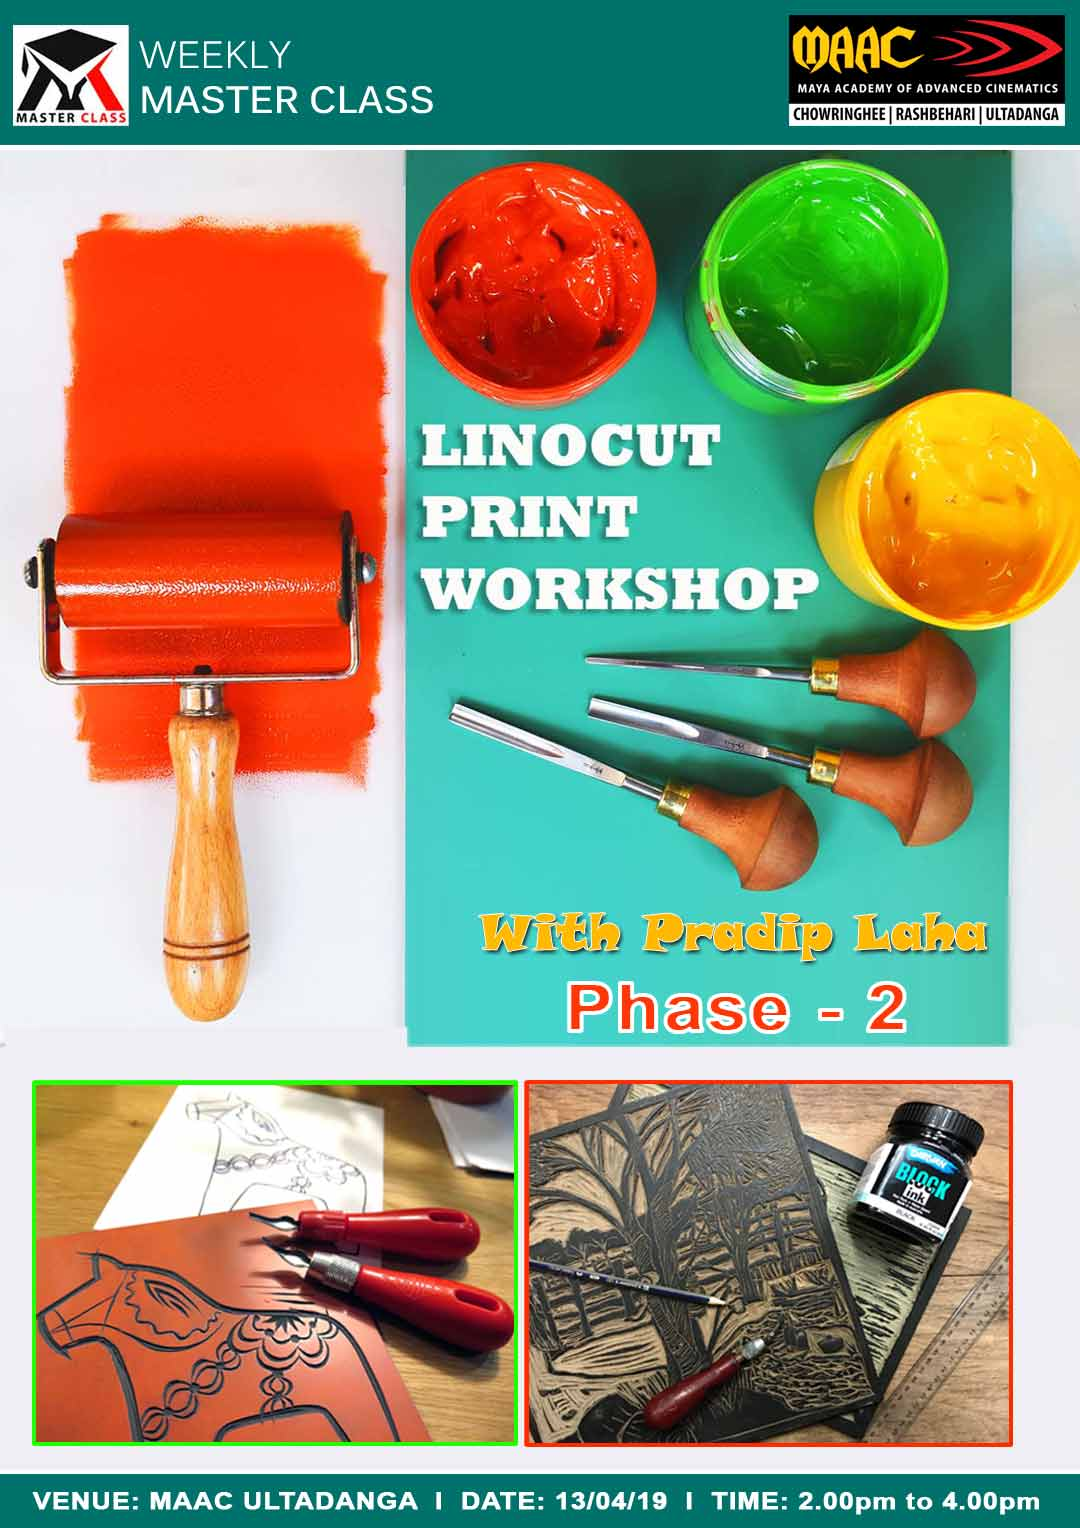 Weekly Master Class on Linocut Print Workshop Phase-2